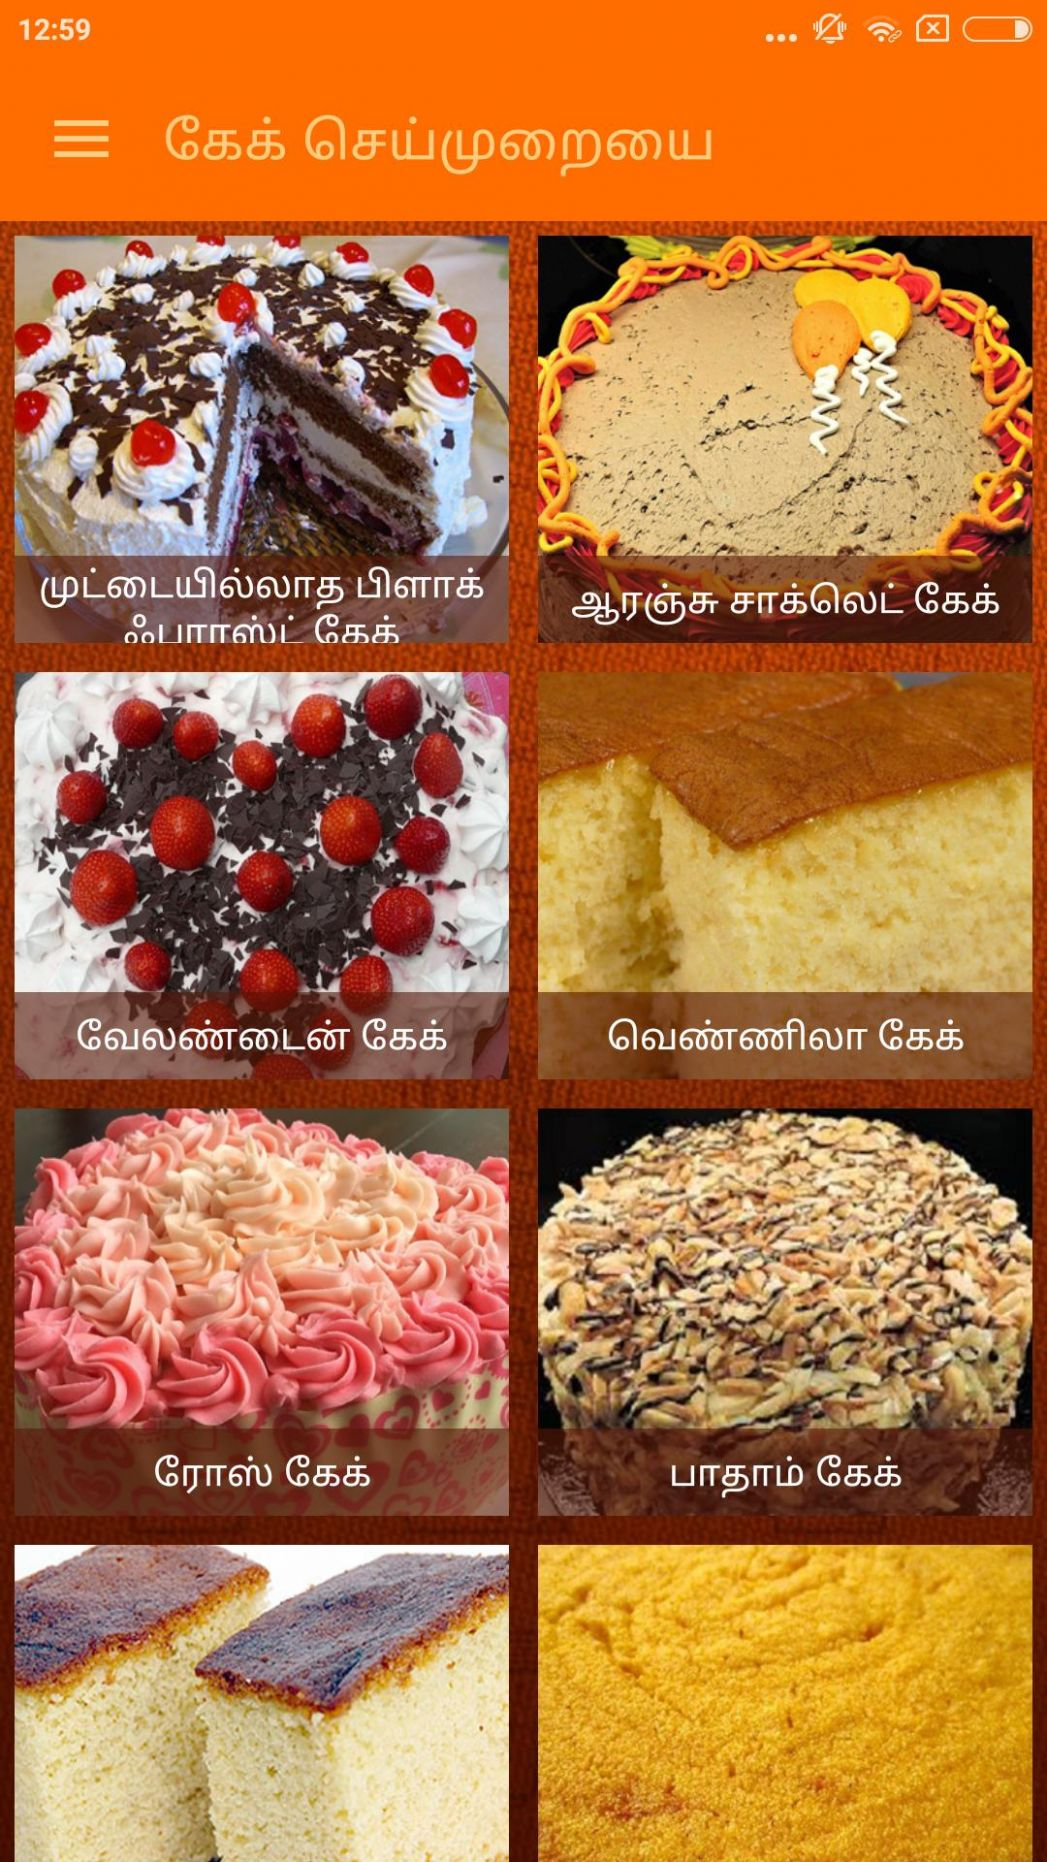 Tamil Cake Recipes for Android - APK Download - Cake Recipes Tamil